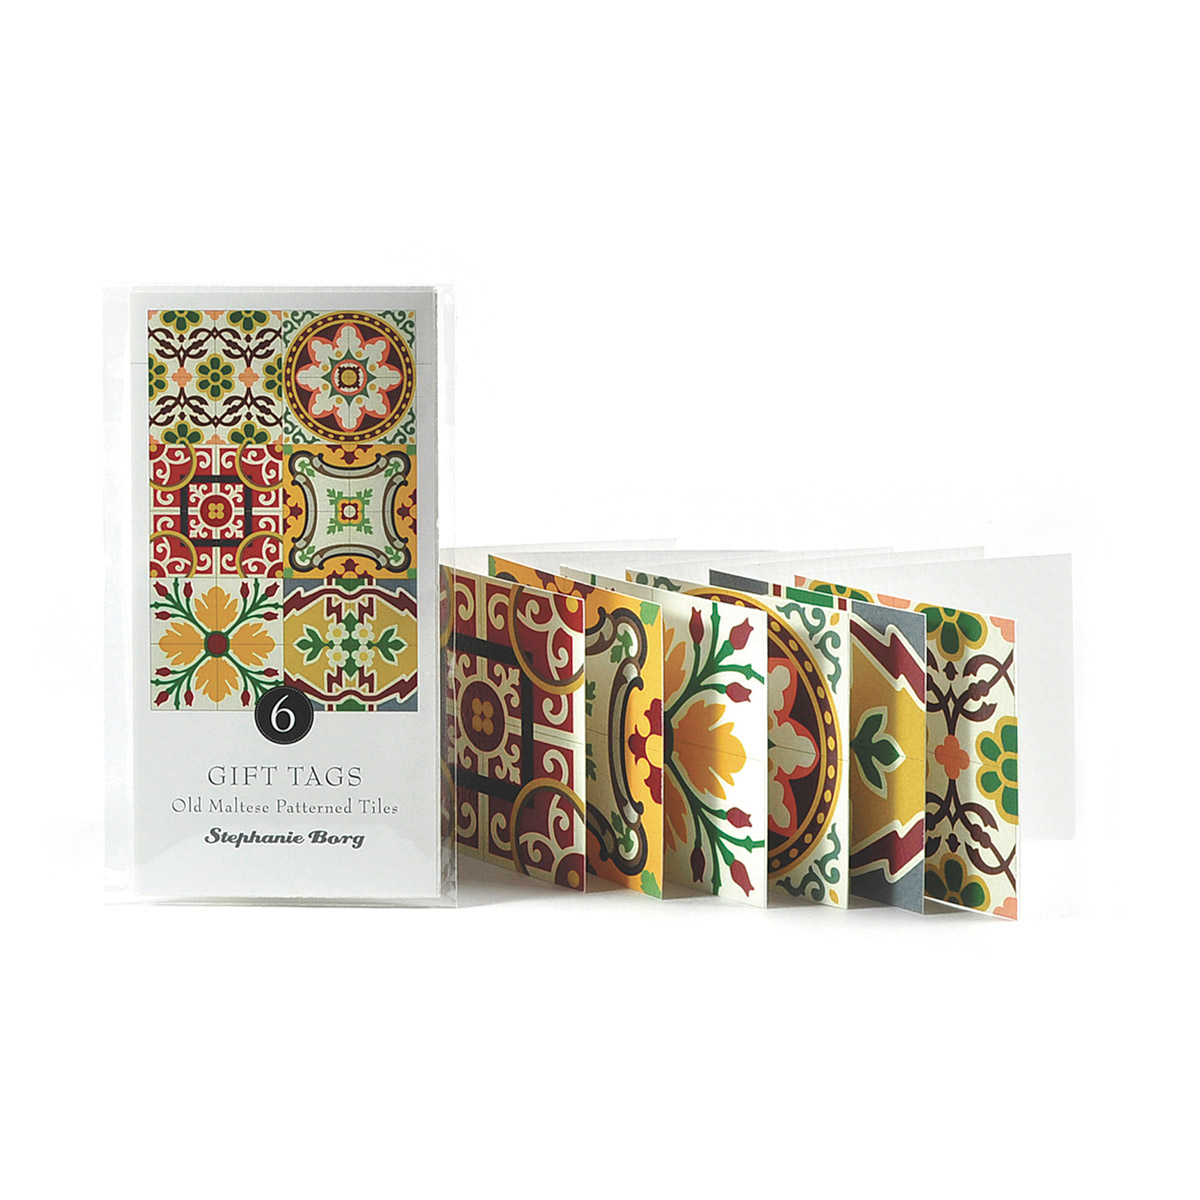 6 Gift Tags with Maltese Tile Patterns, assorted brights